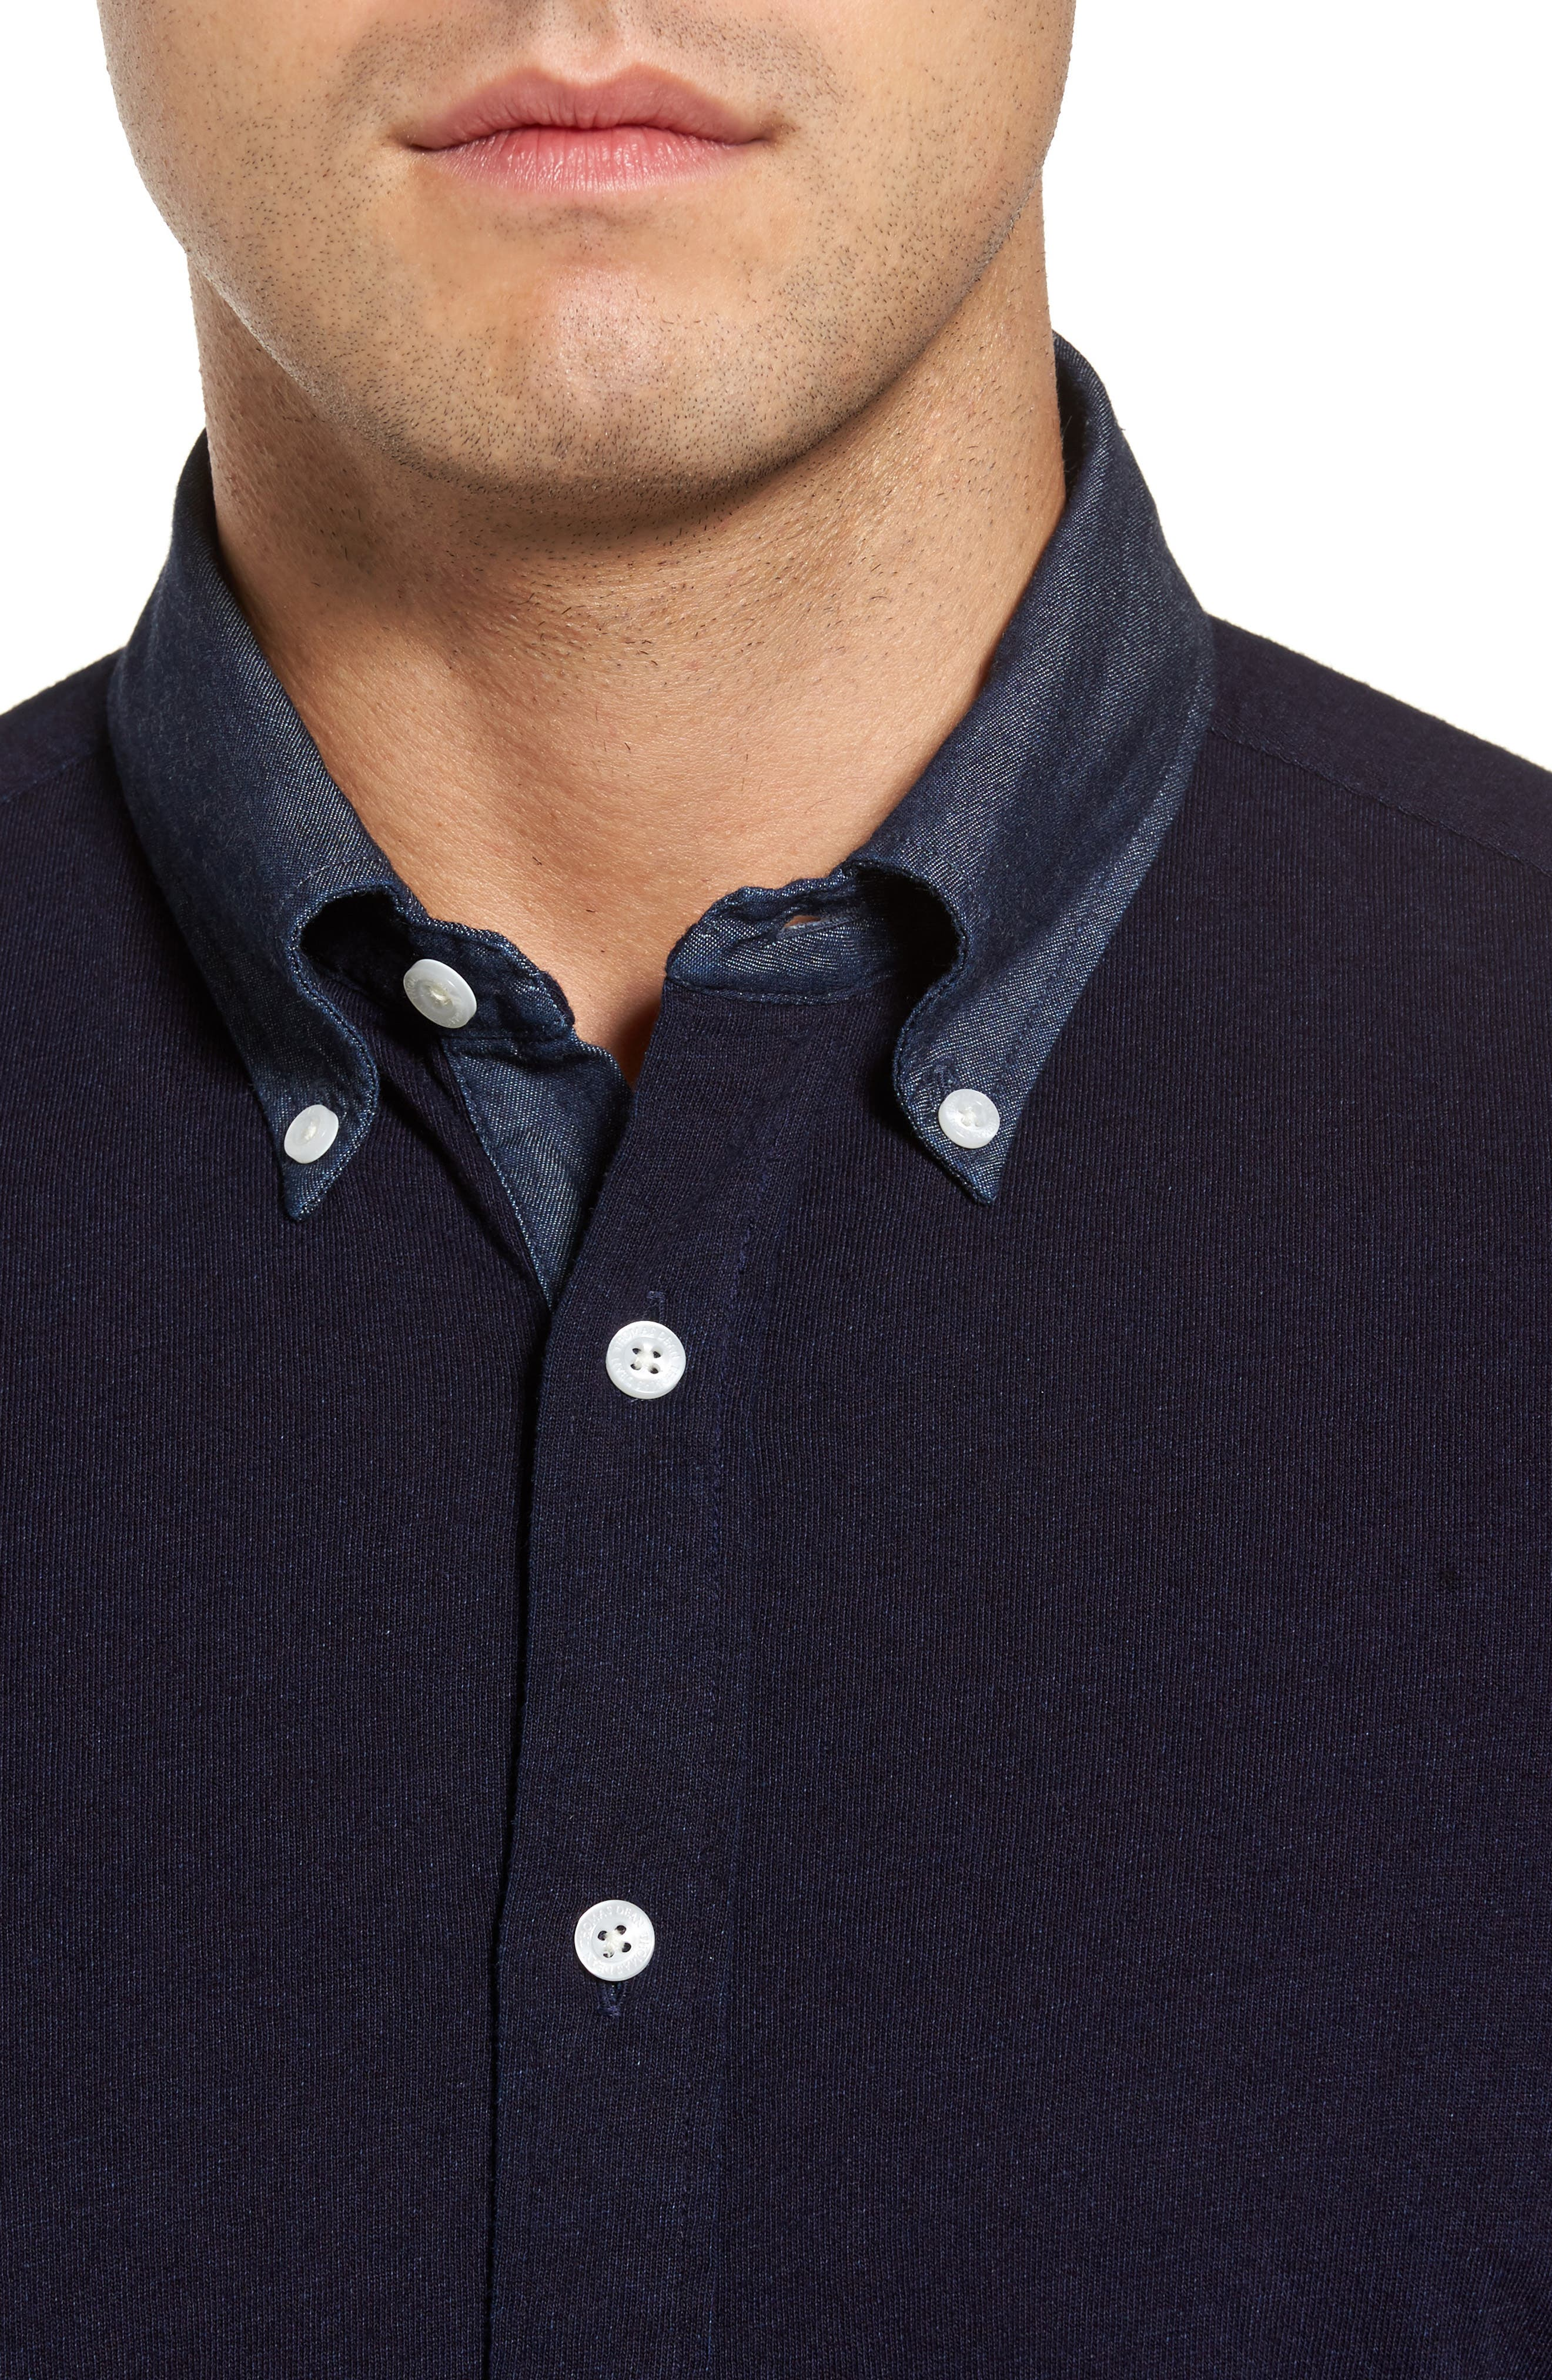 Regular Fit Chambray Trim Jersey Shirt,                             Alternate thumbnail 4, color,                             Indigo